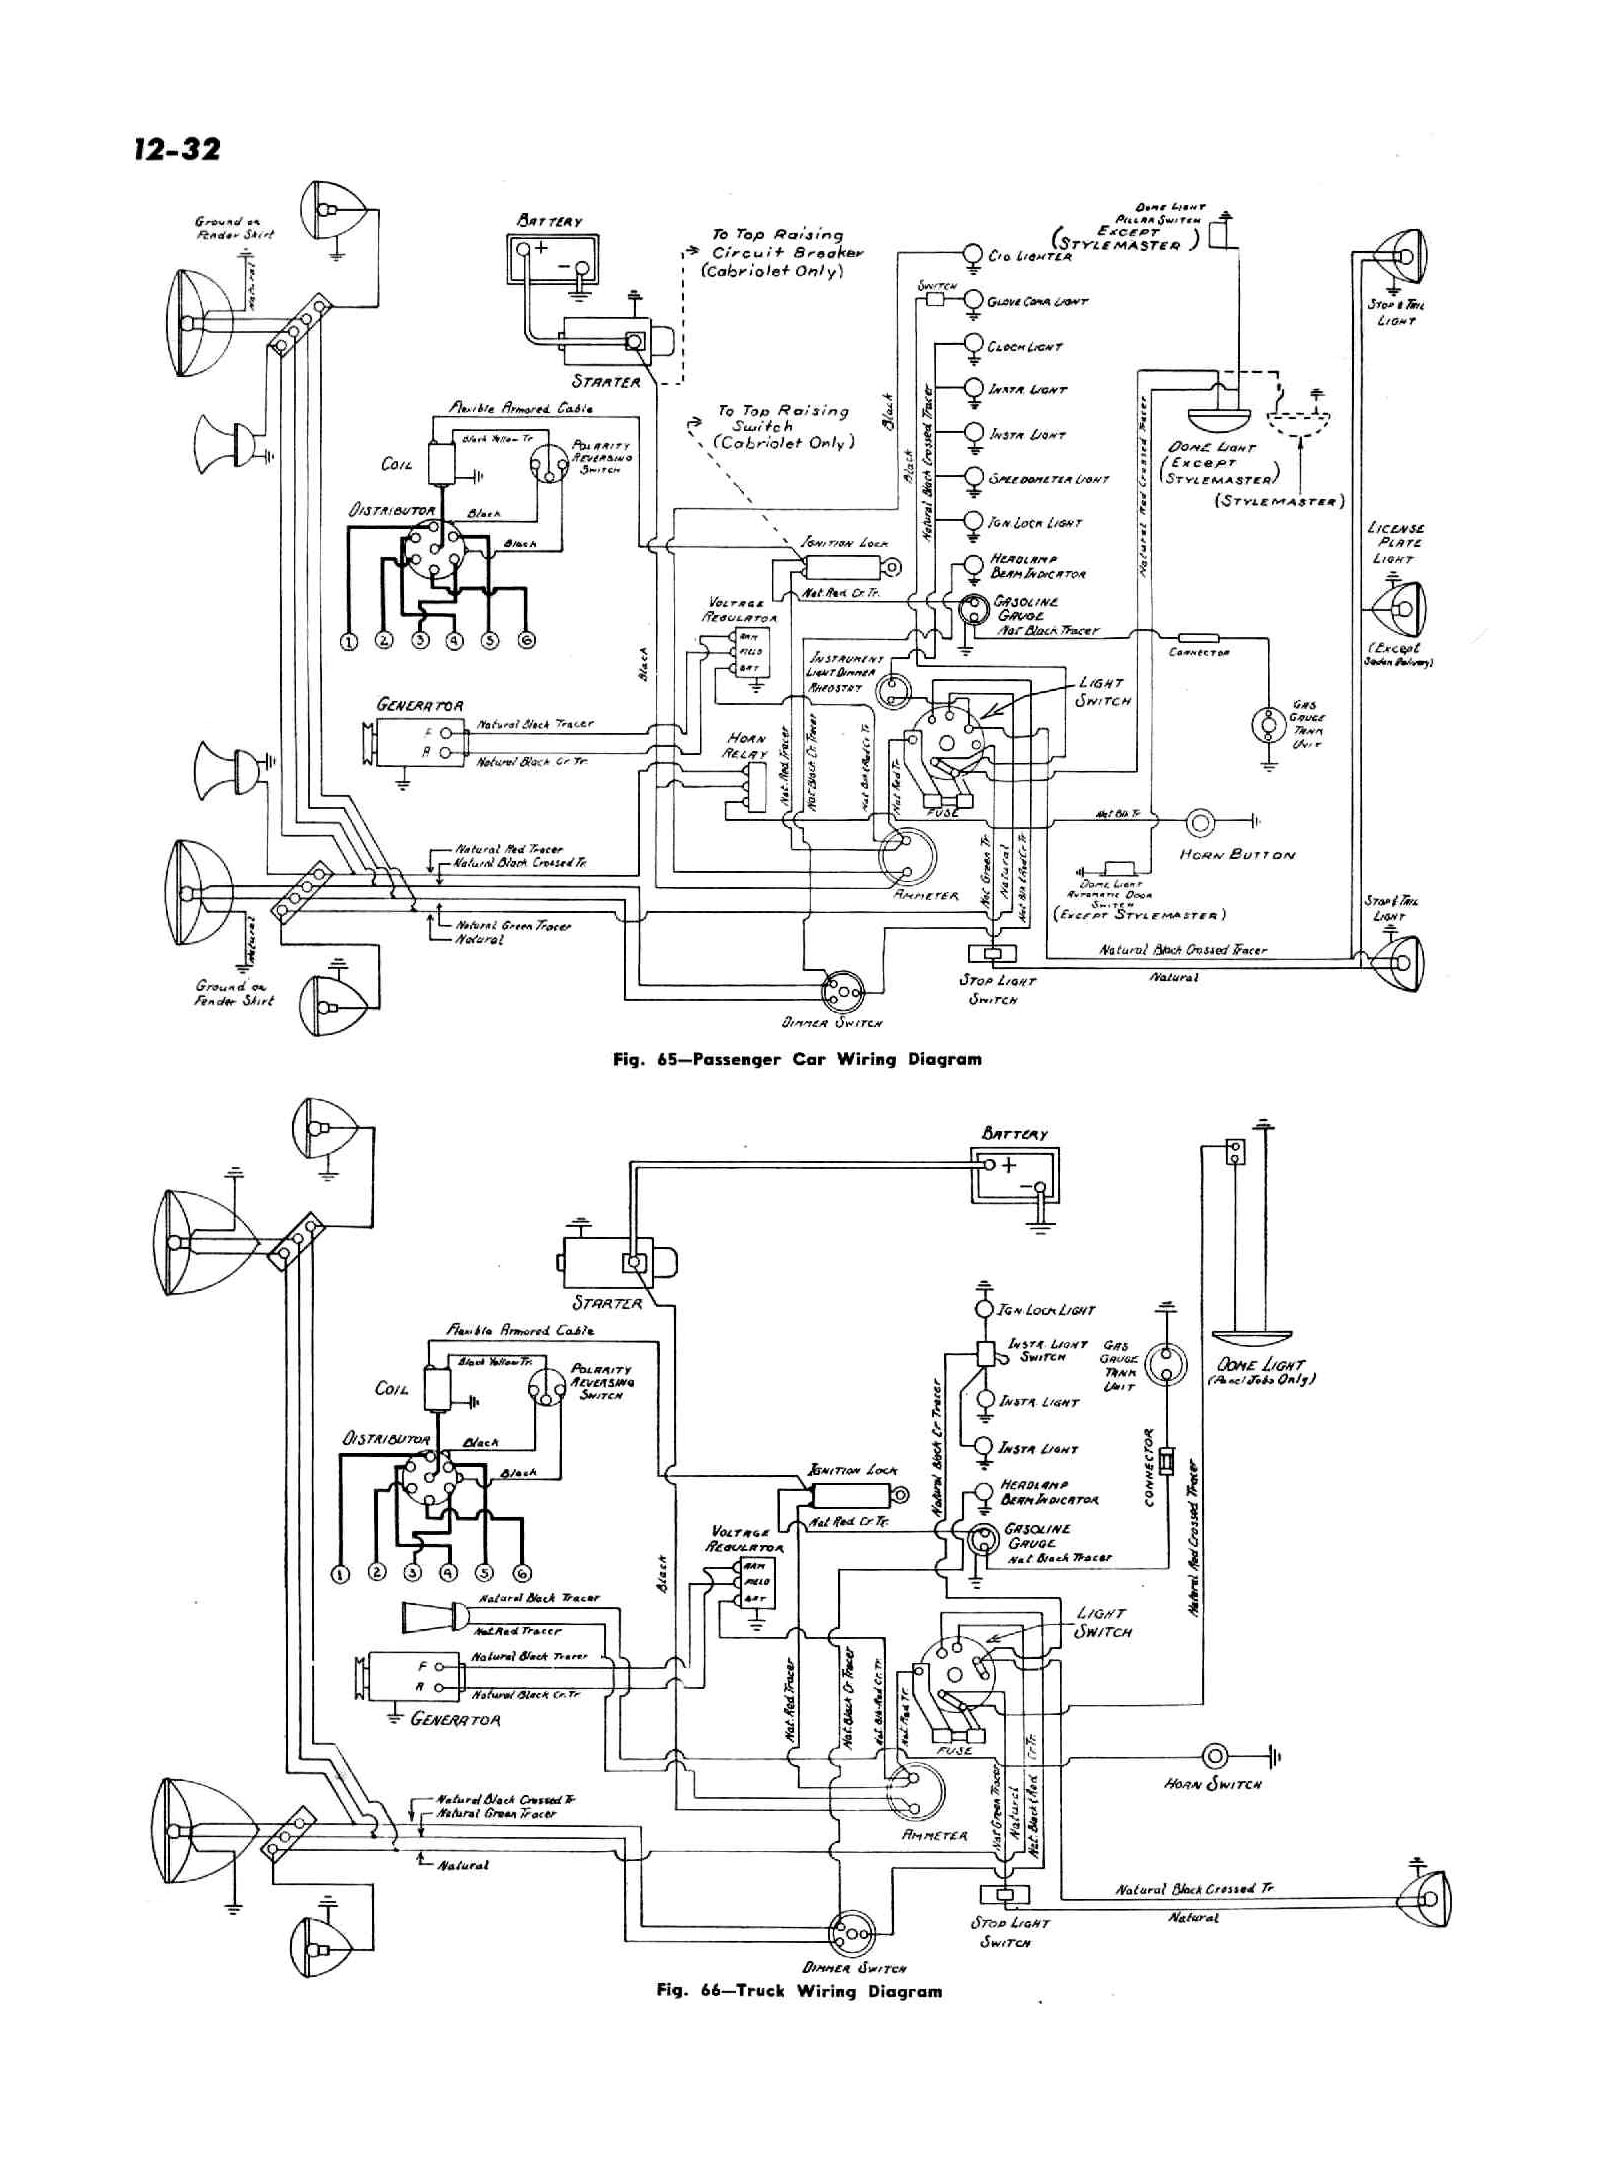 stereo wiring diagram 1996 ford thunderbird wiring diagram database 1995 Pontiac Firebird Wiring Diagram 1958 gmc truck wiring diagram wiring diagram all data 1989 ford thunderbird wiring diagram stereo wiring diagram 1996 ford thunderbird